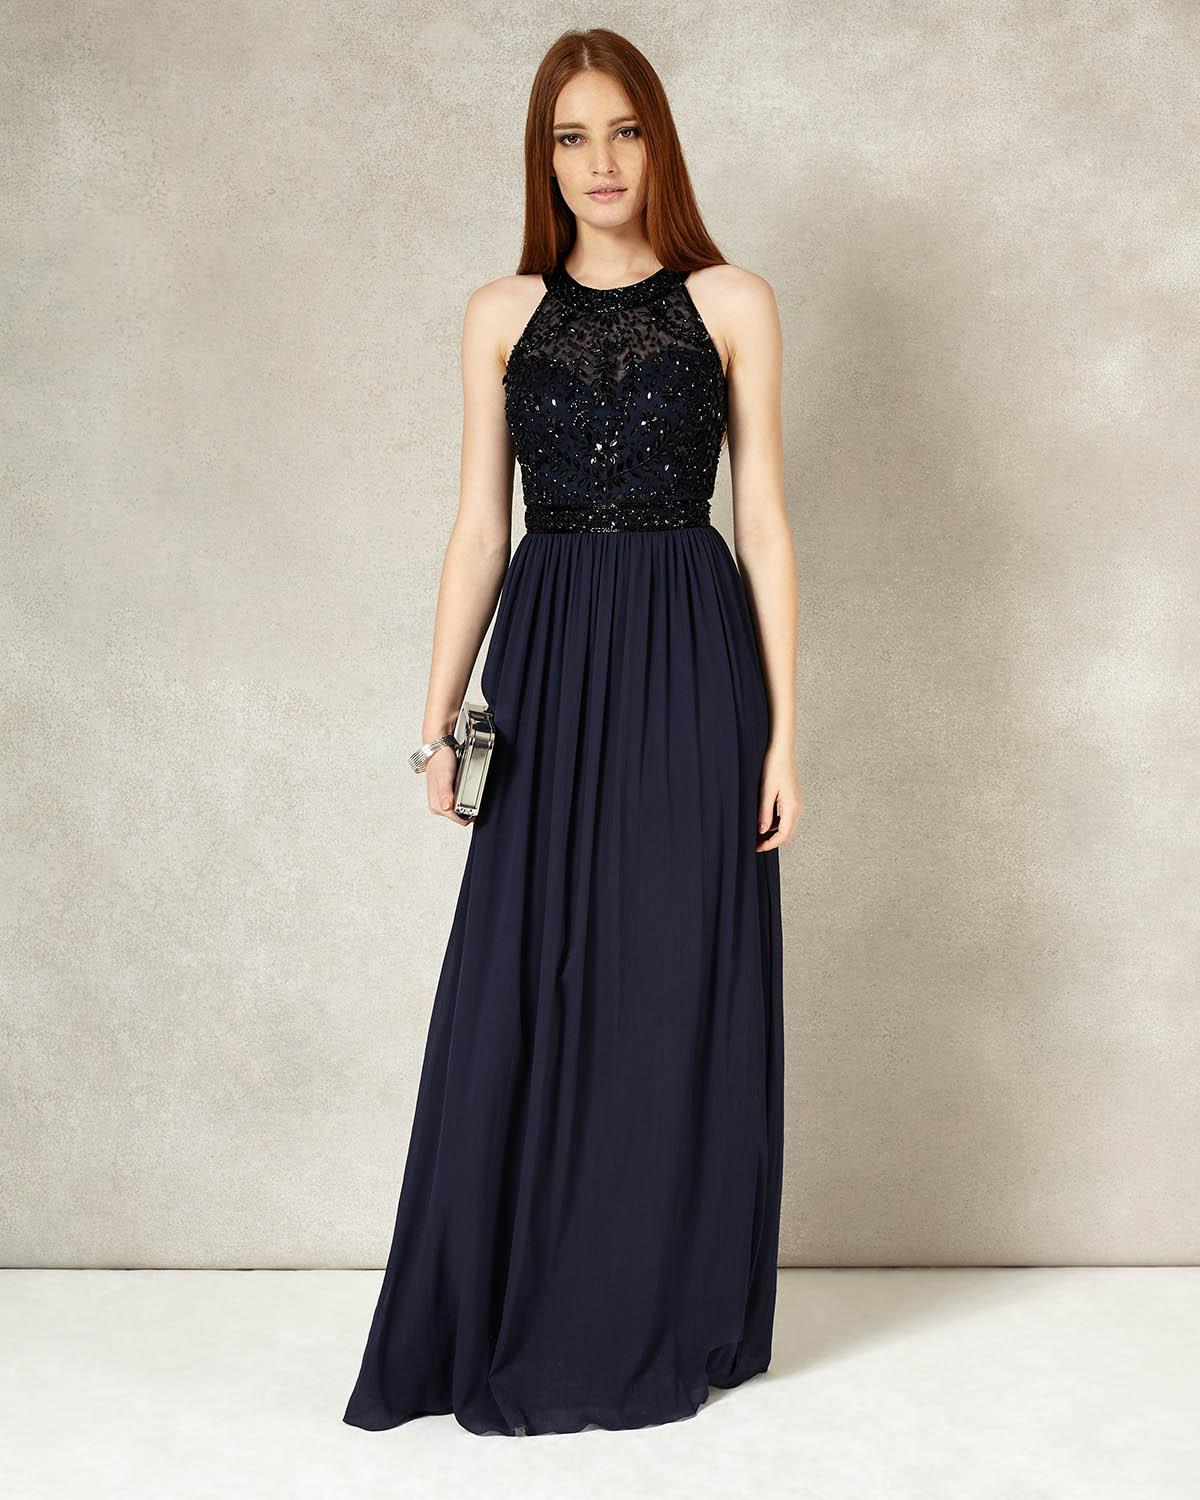 Elwyn Embellished Maxi Dress Reviews | Phase Eight Online Reviews ...